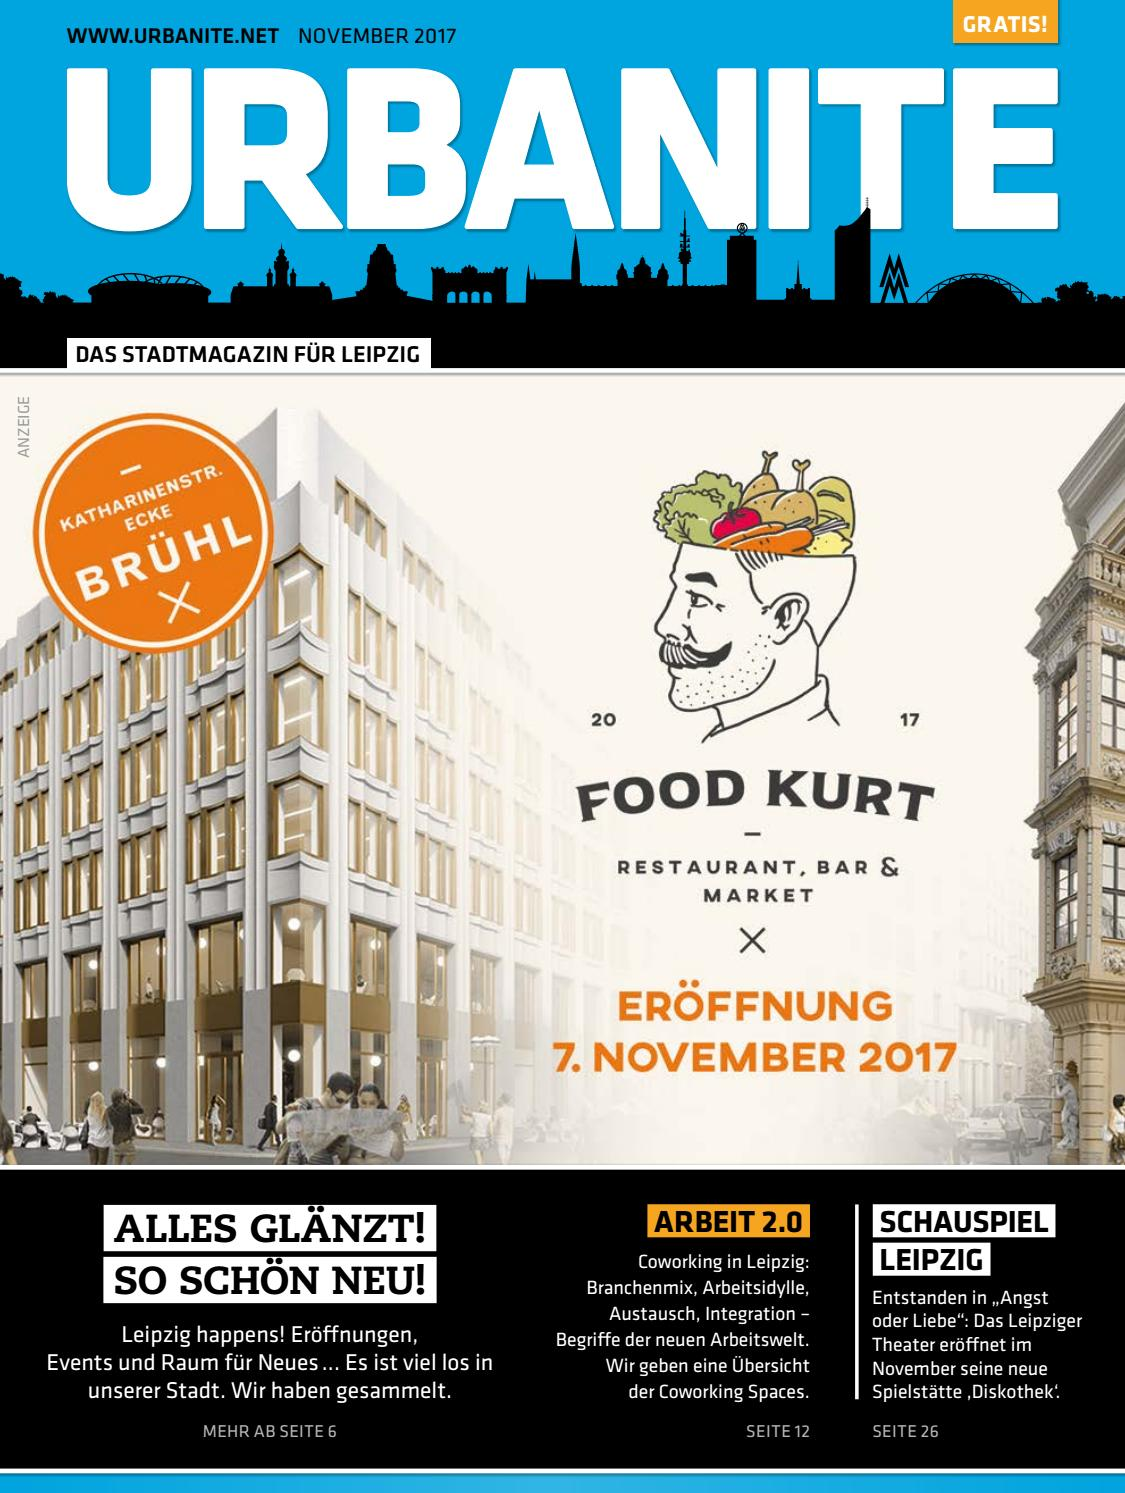 URBANITE - Stadtmagazin Leipzig | November 2017 by urbanite - issuu